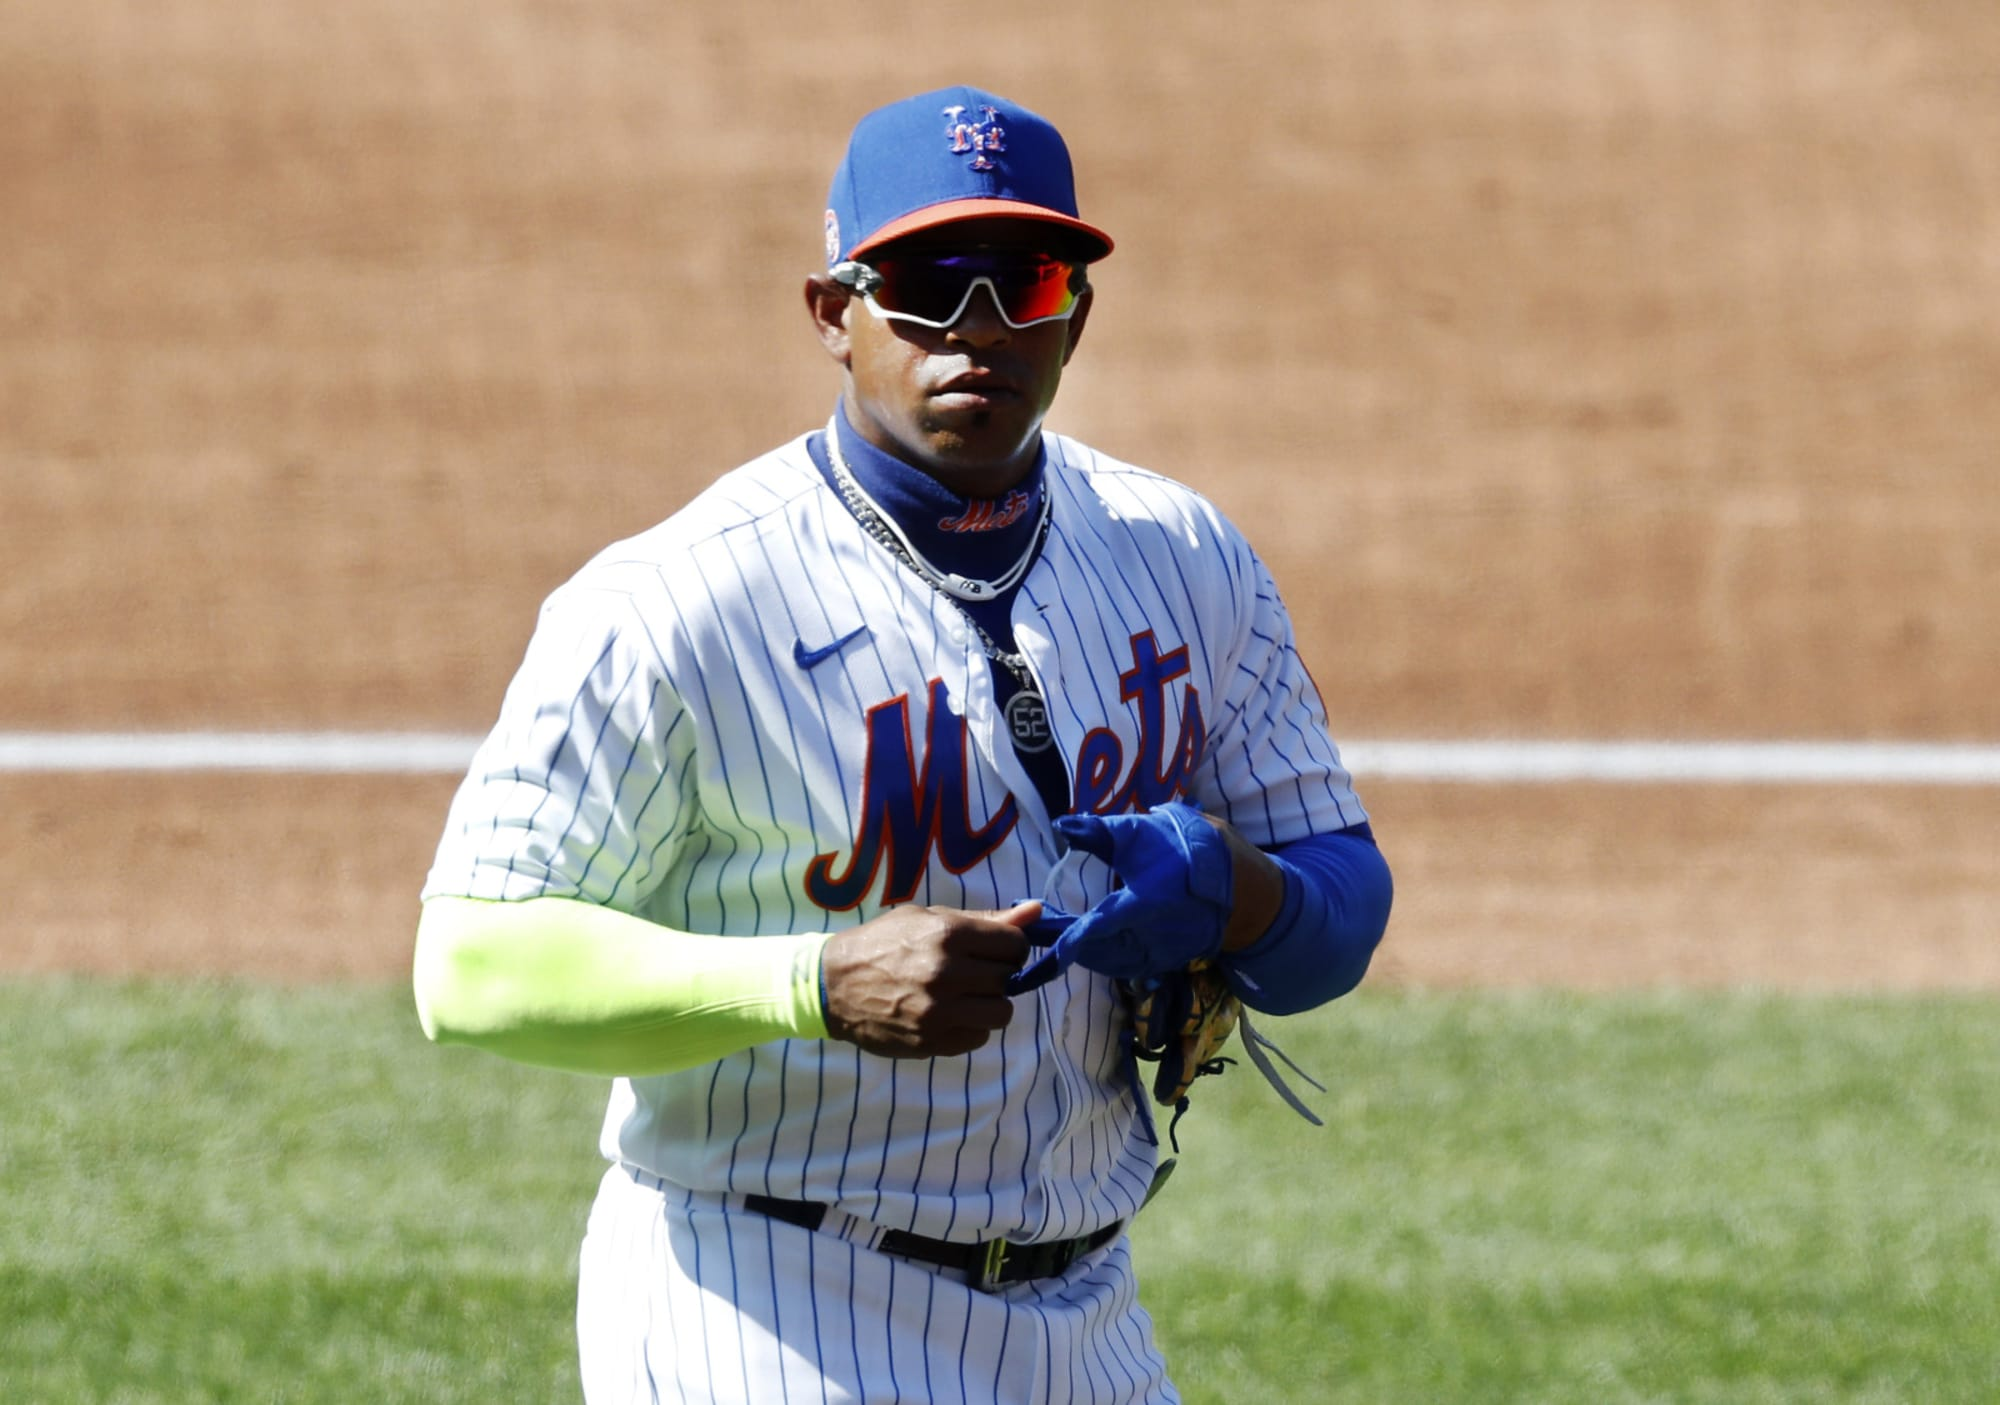 Here's the only reason Yankees attended Yoenis Cespedes' showcase